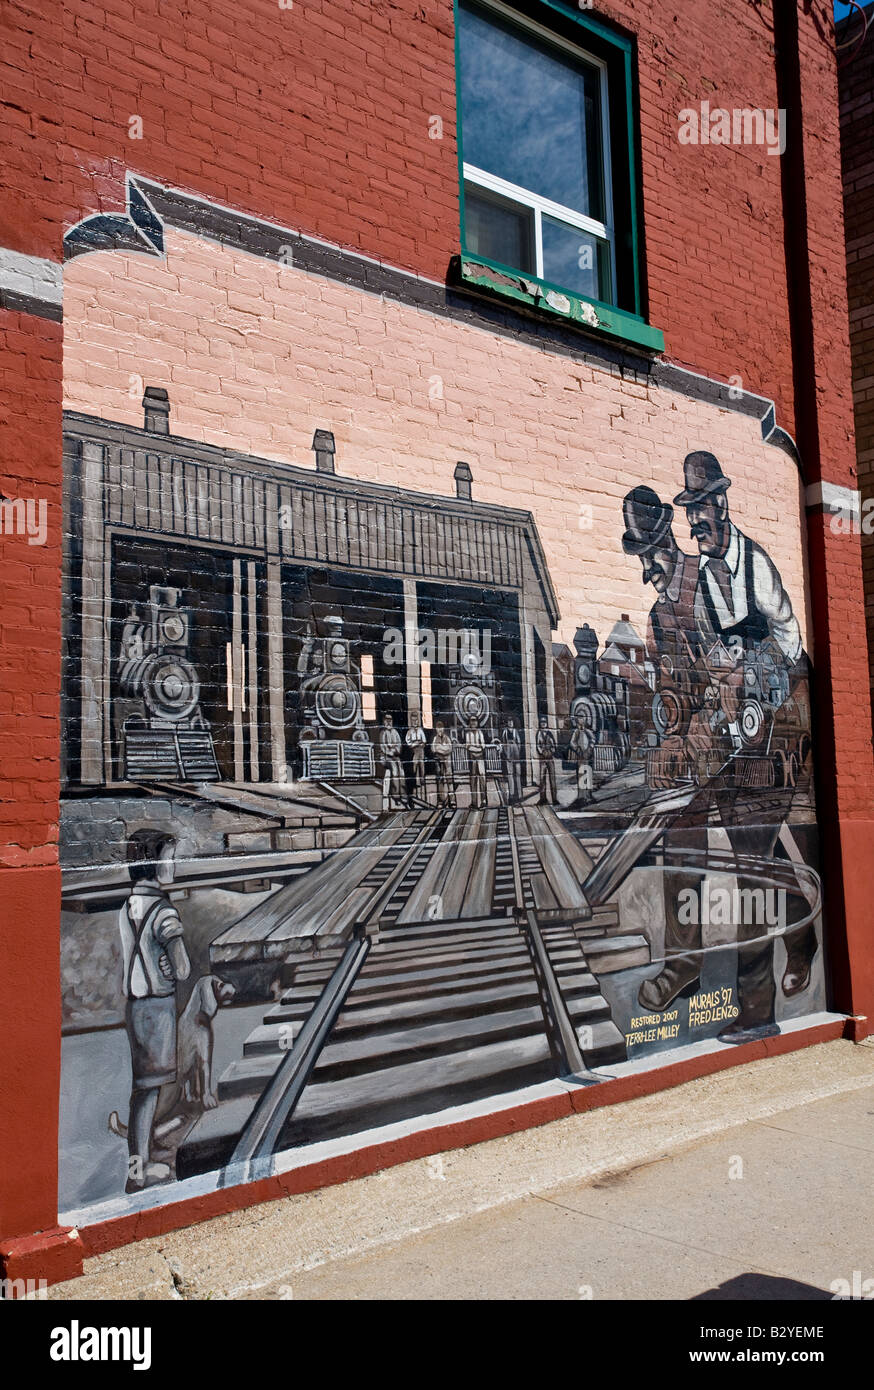 Mural by fred lenz depicting work on the train system at midland bay ontario canada